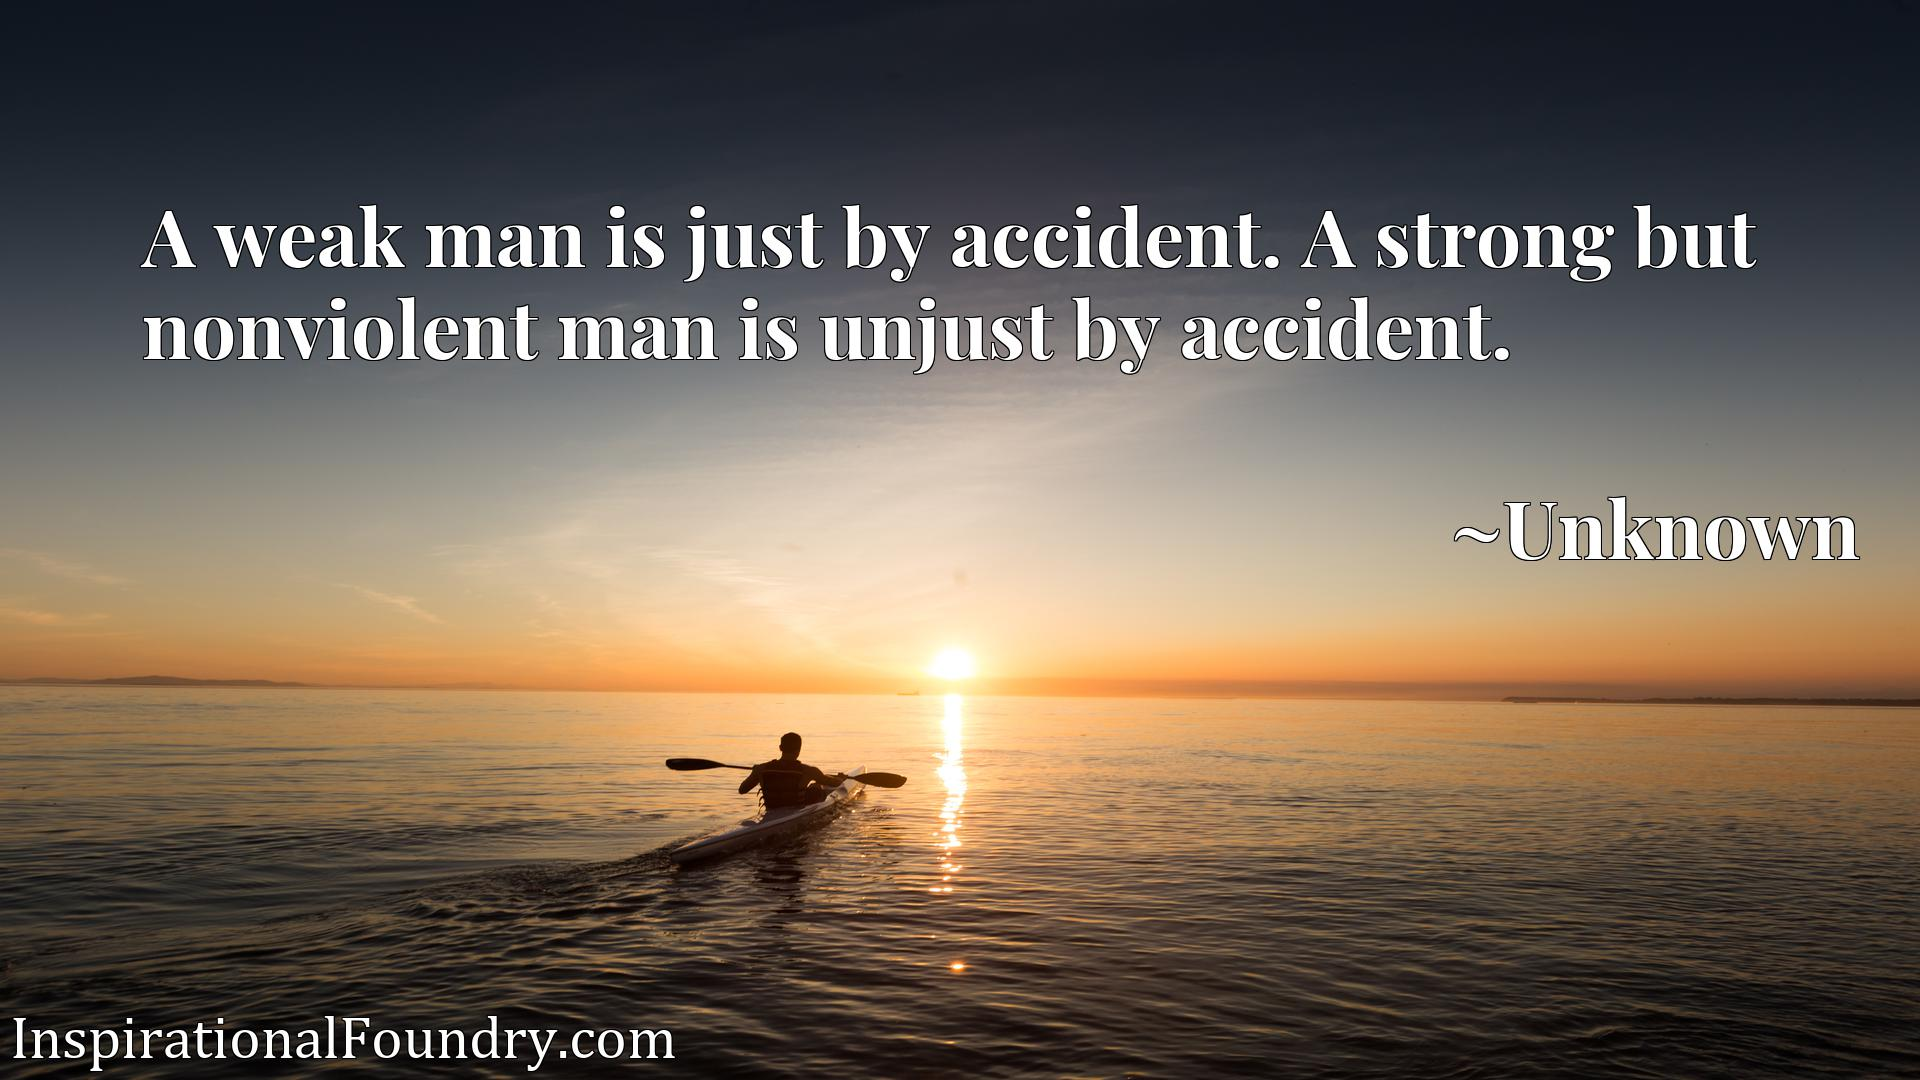 A weak man is just by accident. A strong but nonviolent man is unjust by accident.